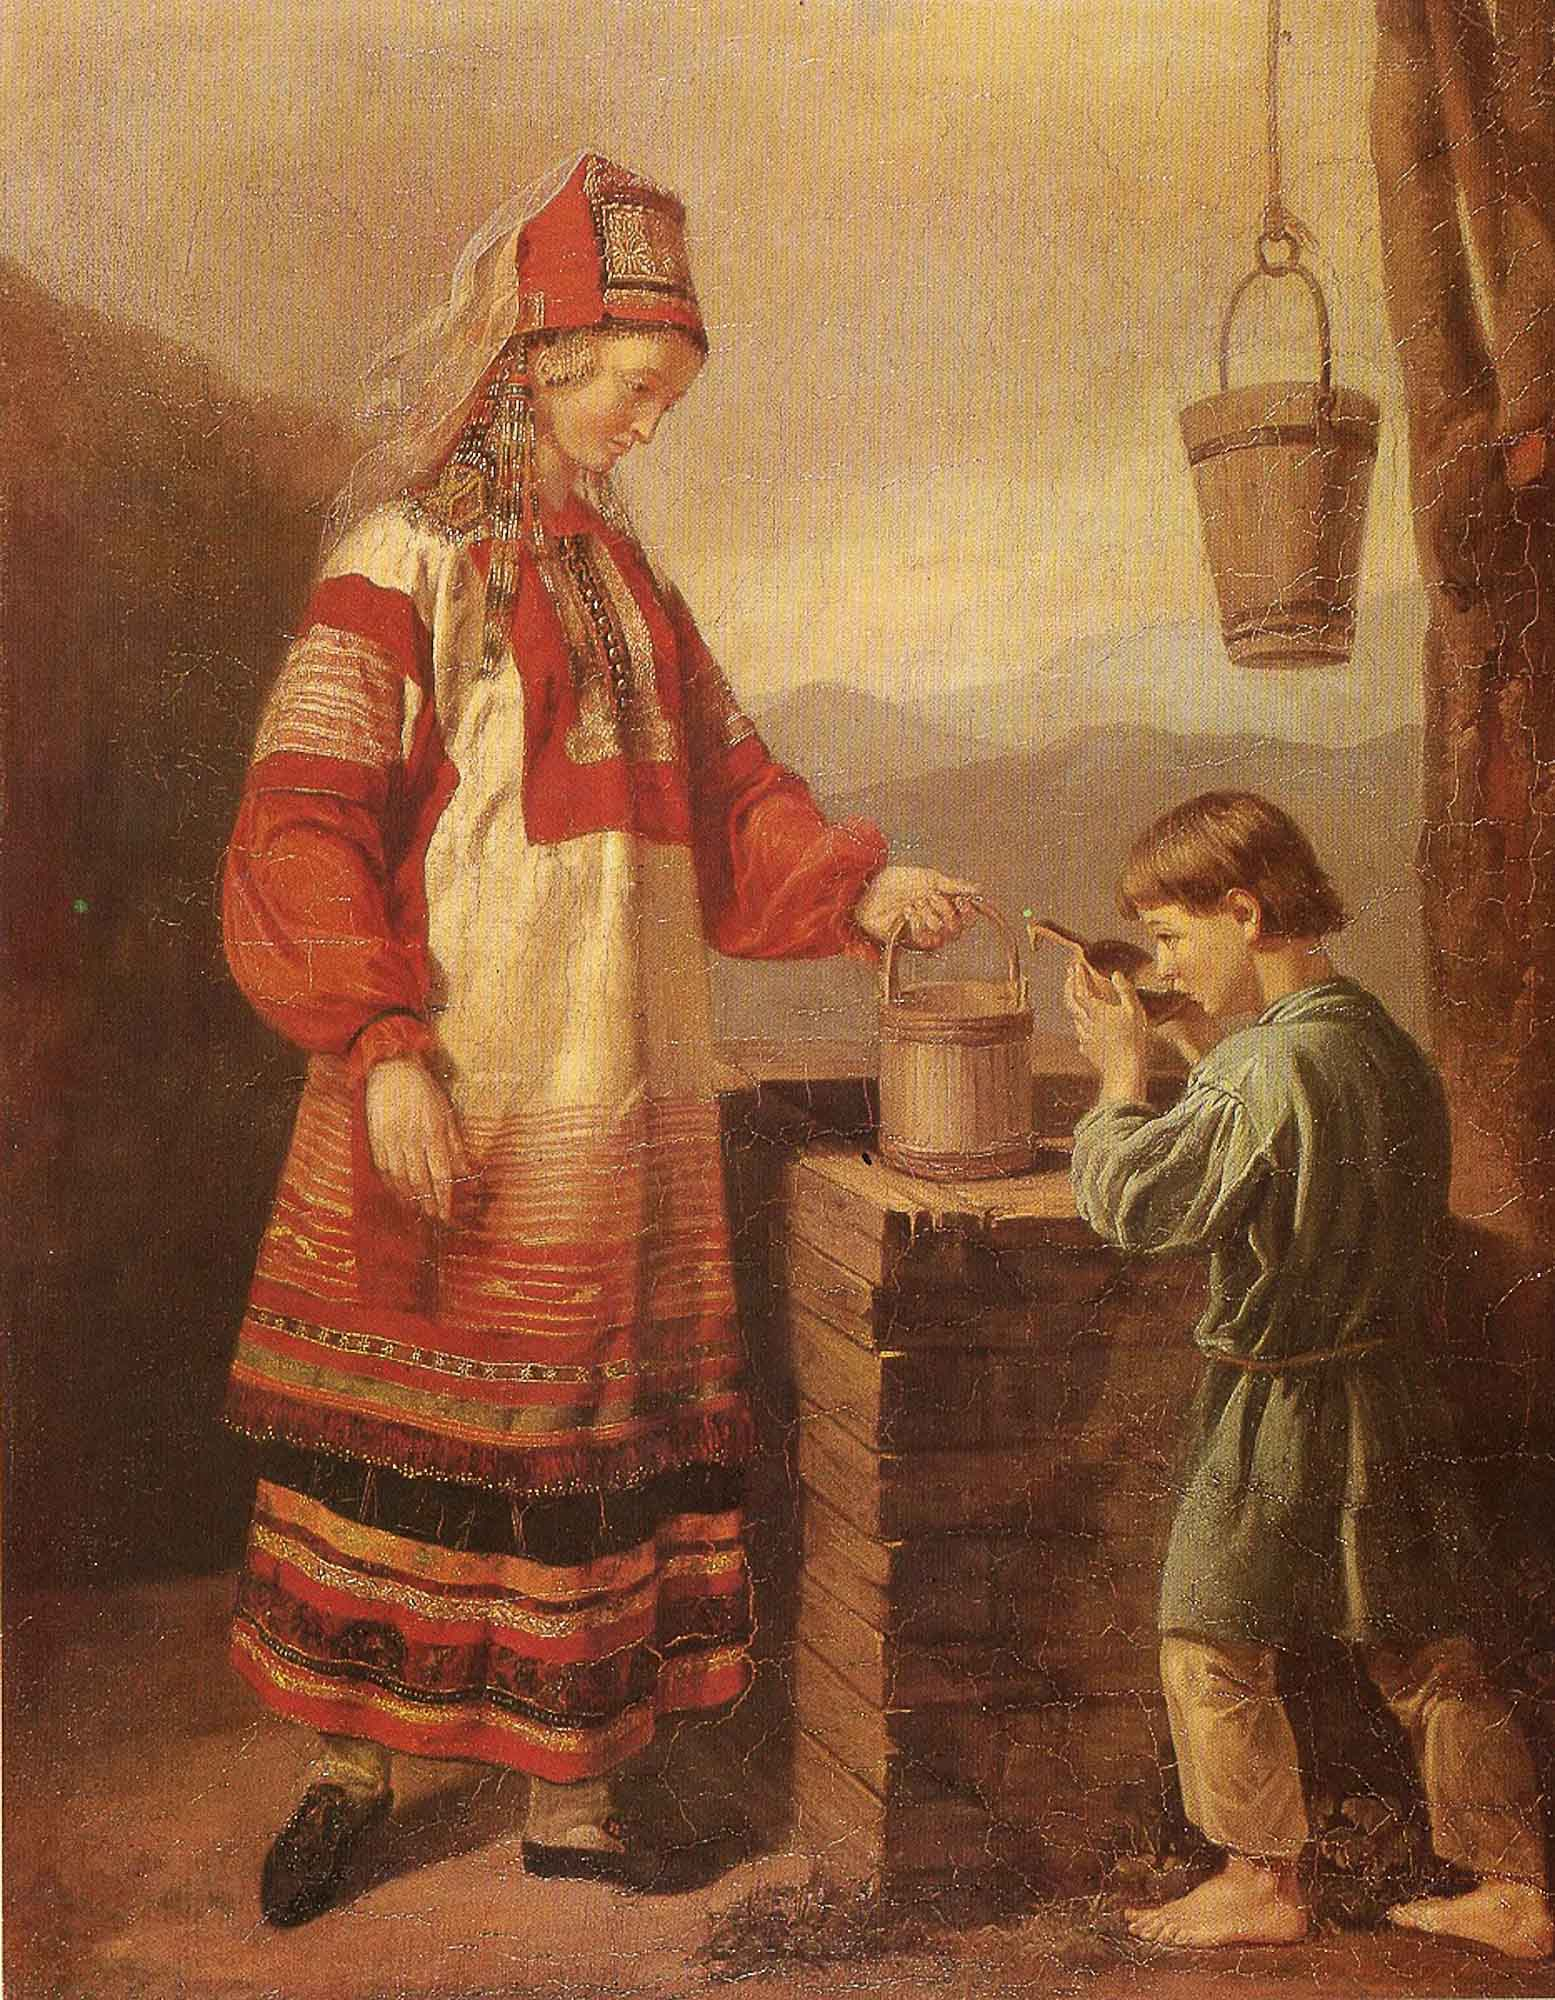 traditional russian clothing to discover russia a w a boy at the well the first half of the 19th century